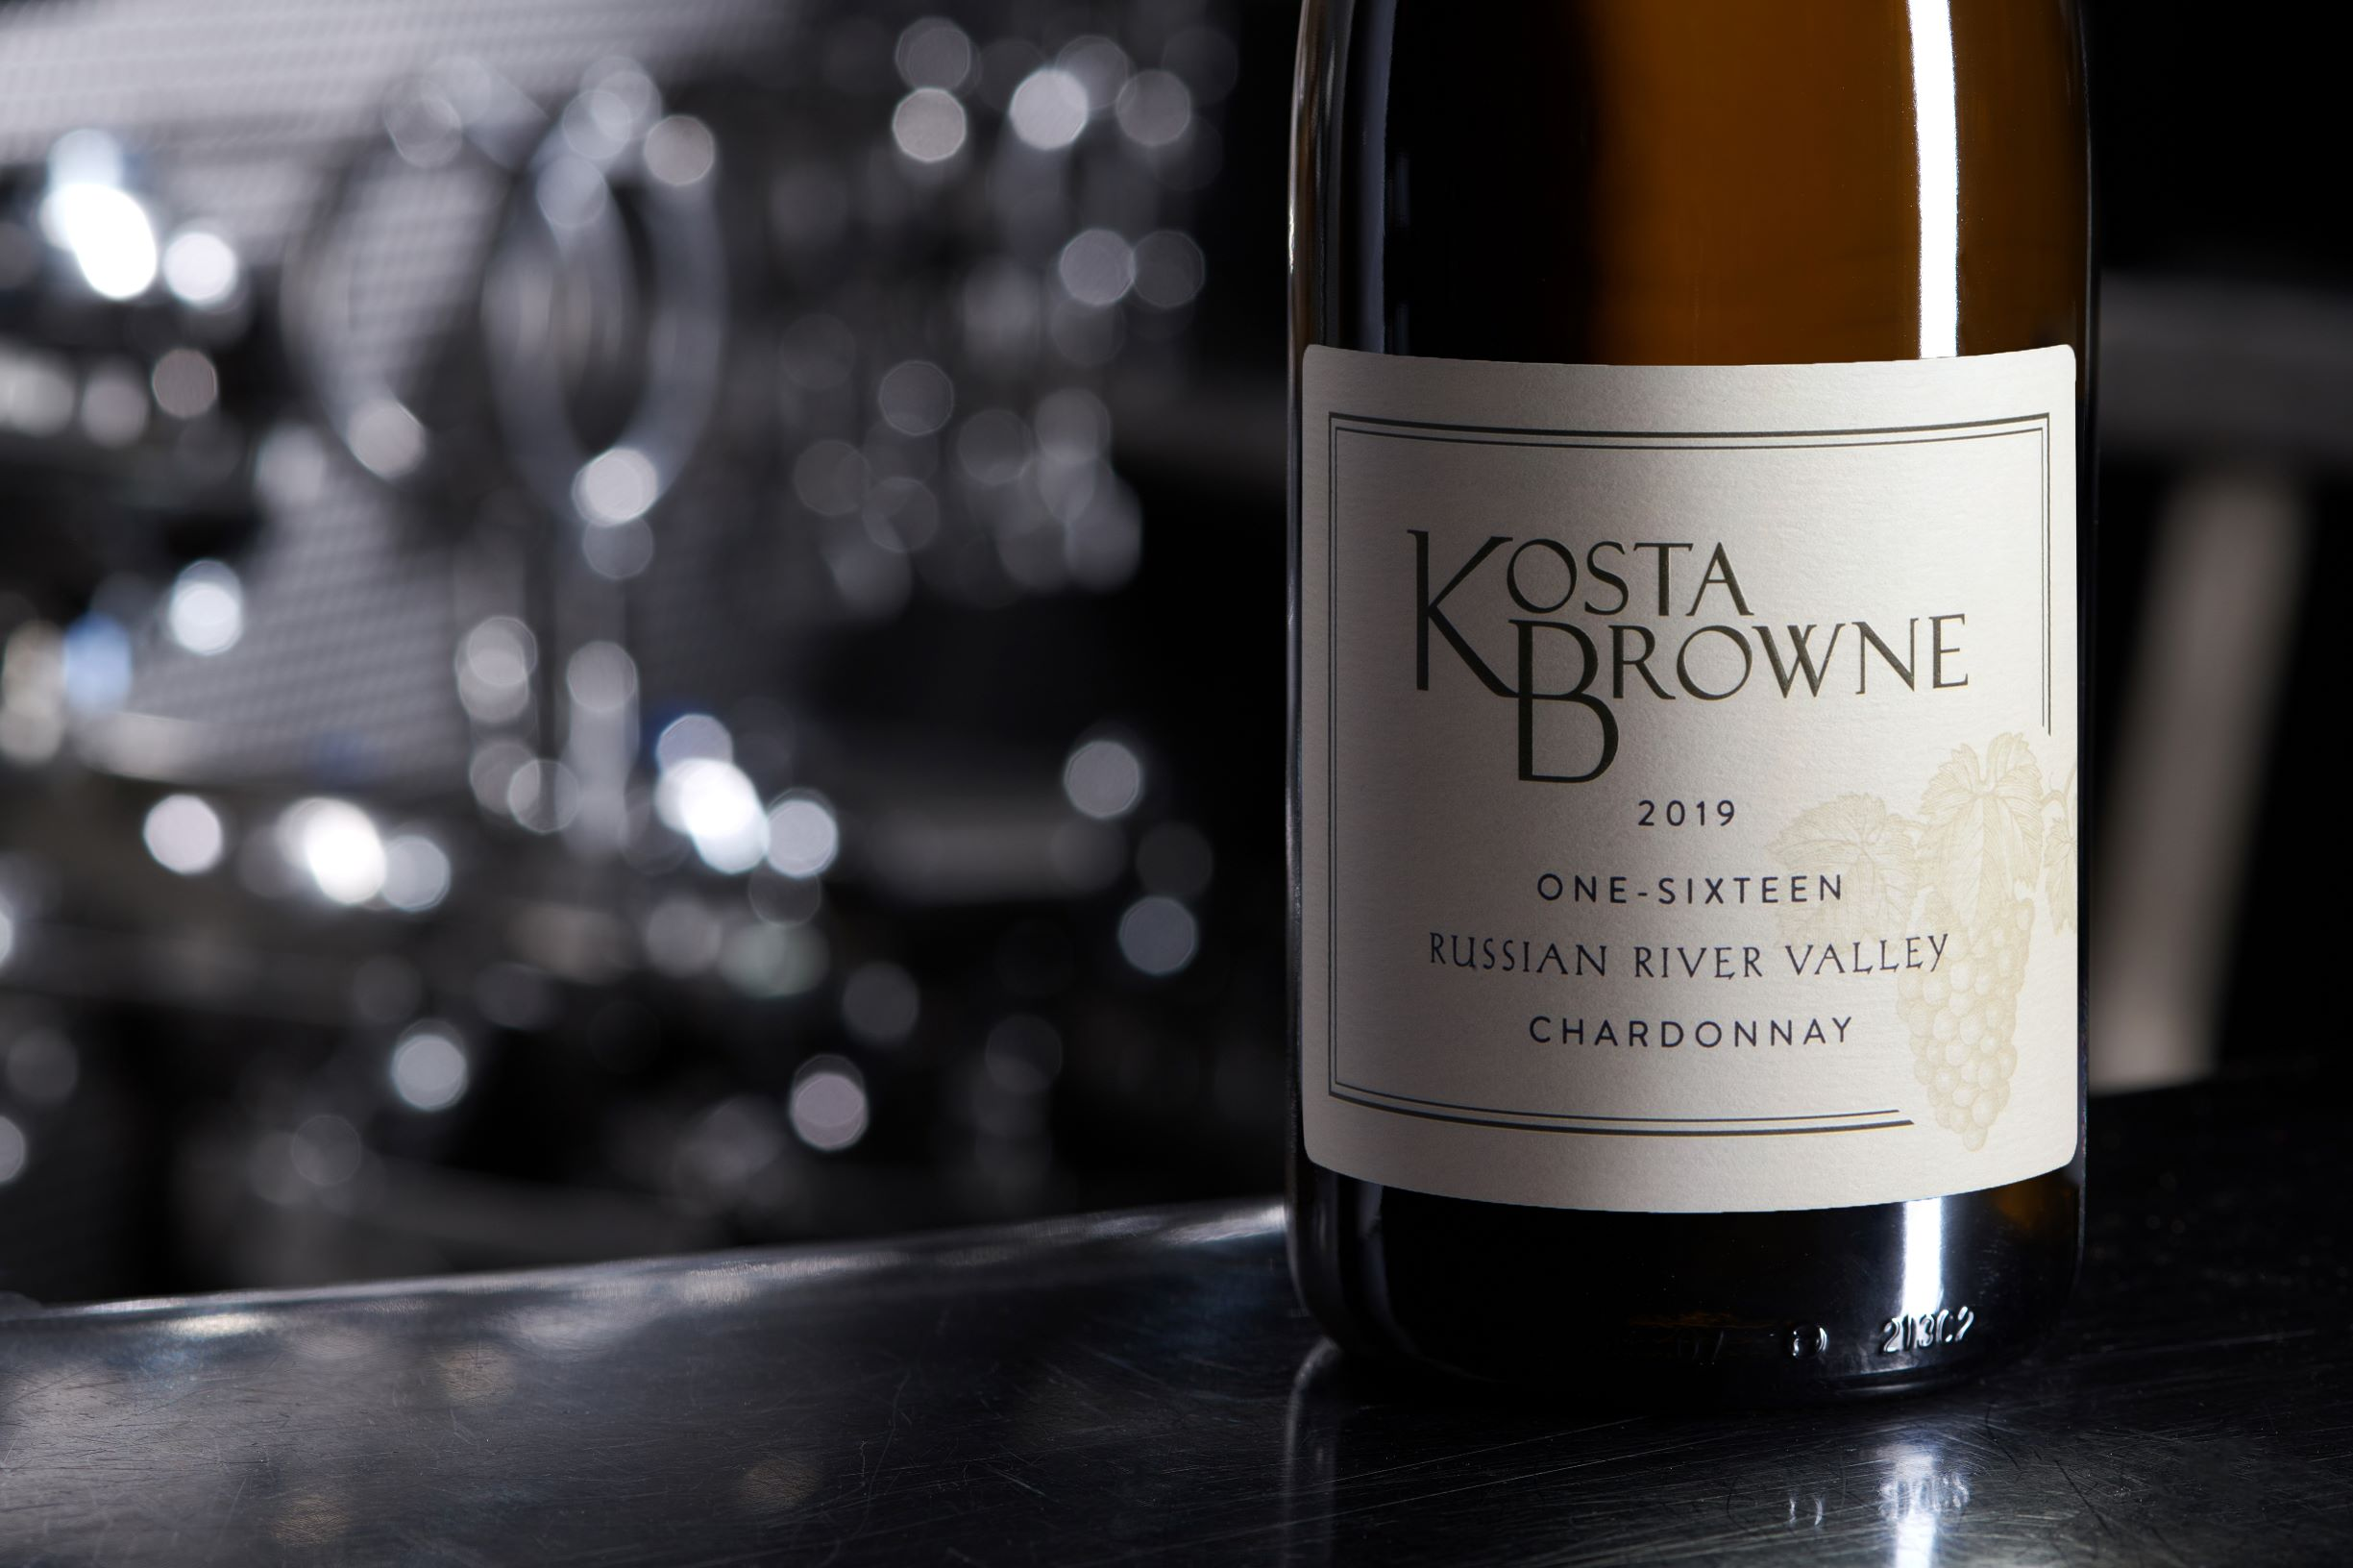 2019 One-Sixteen, Russian River Valley Chardonnay - Kosta Browne Winery